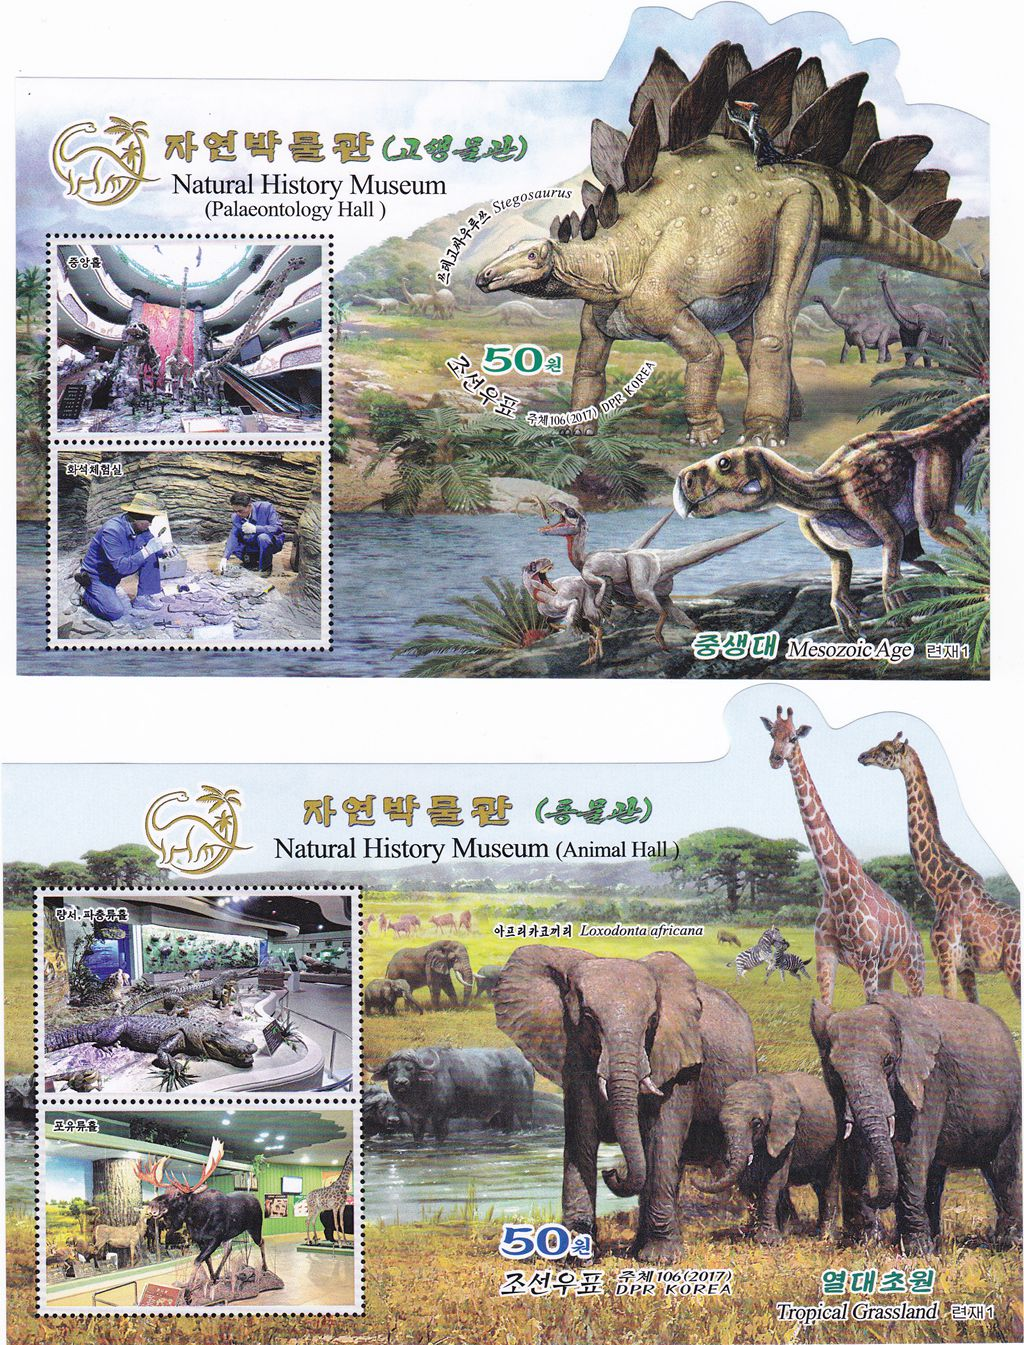 L4374, Korea Natural History Museum, 5 pcs SS Stamps, 2017 Imperforate